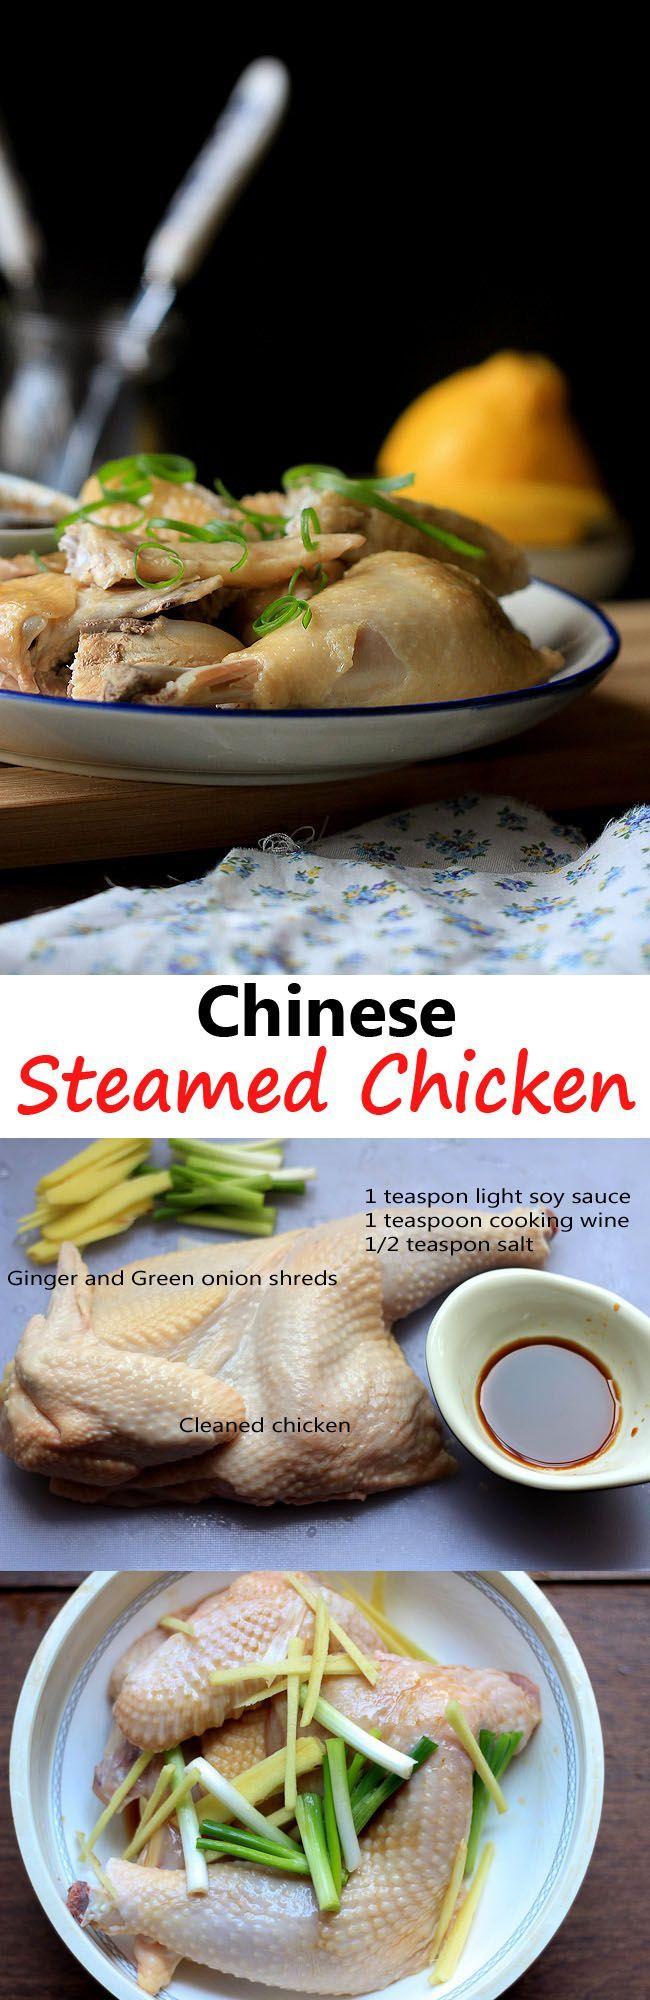 Chinese steamed chicken recipe china chinese food recipes and food chinese steamed chicken recipe china sichuan food forumfinder Images